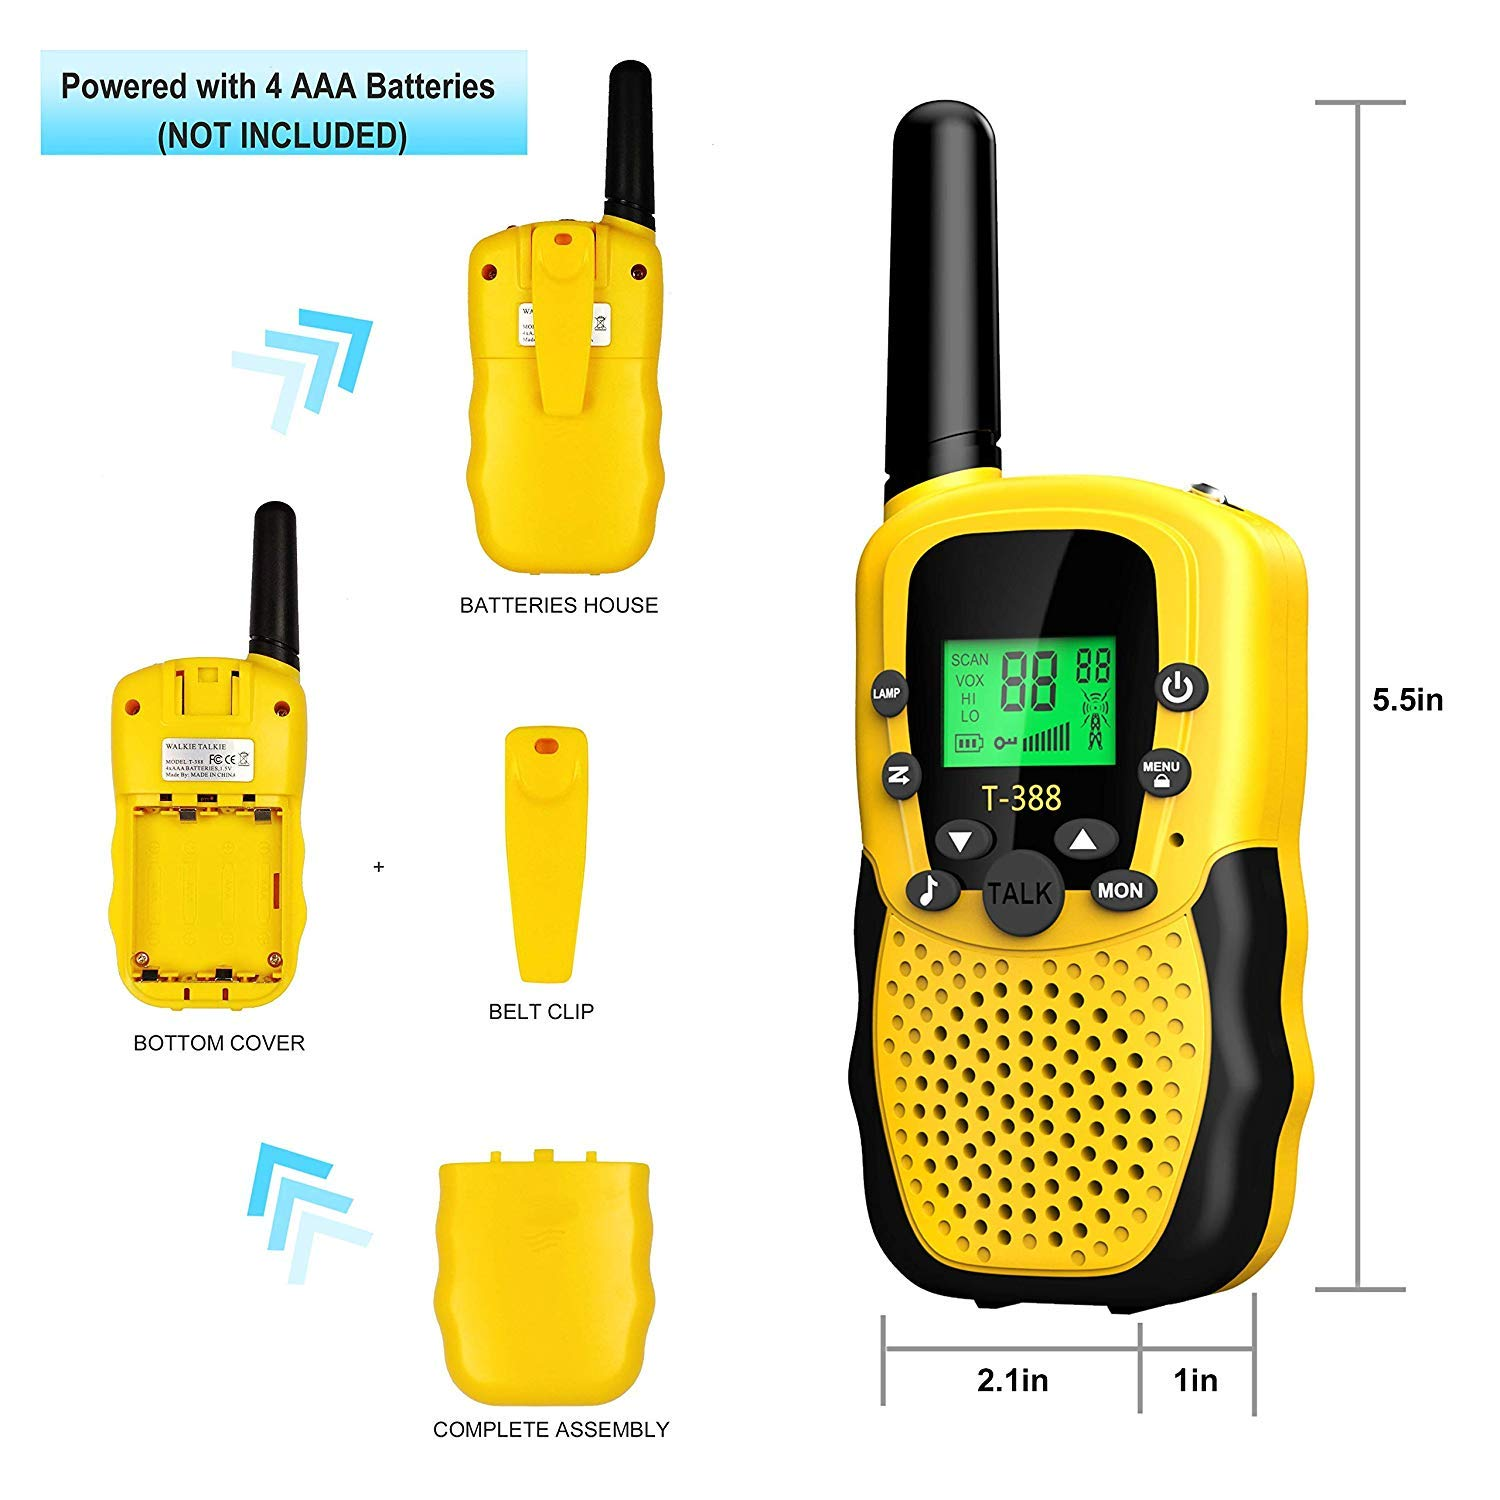 Kids Walkie Talkies, Walkie Talkies for Boys and Girls, 22 Channels 10 Customized Ringtones with Flashlight for Outdoors Good Parenting Toys by VERDUO (Image #2)